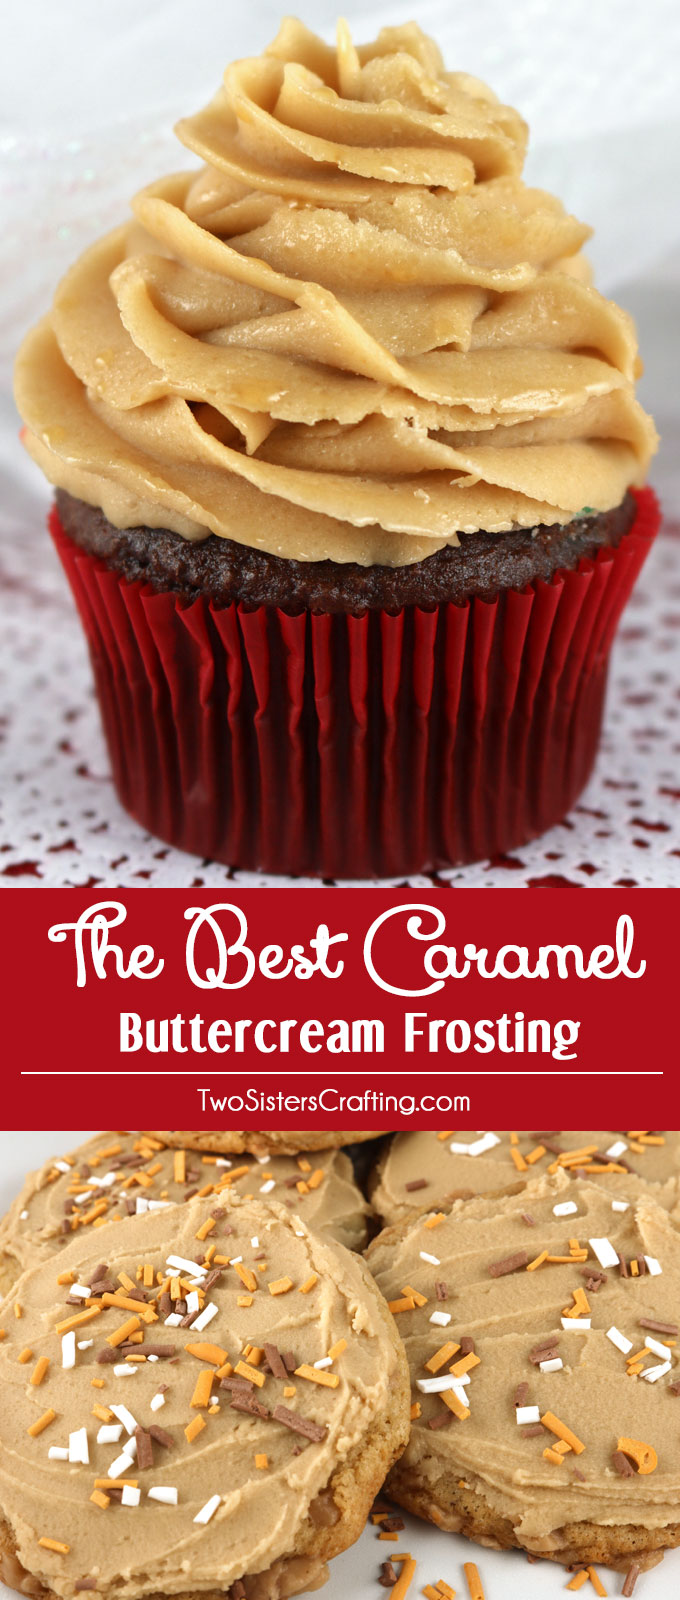 Icing Caramel Frosting Easy Recipes